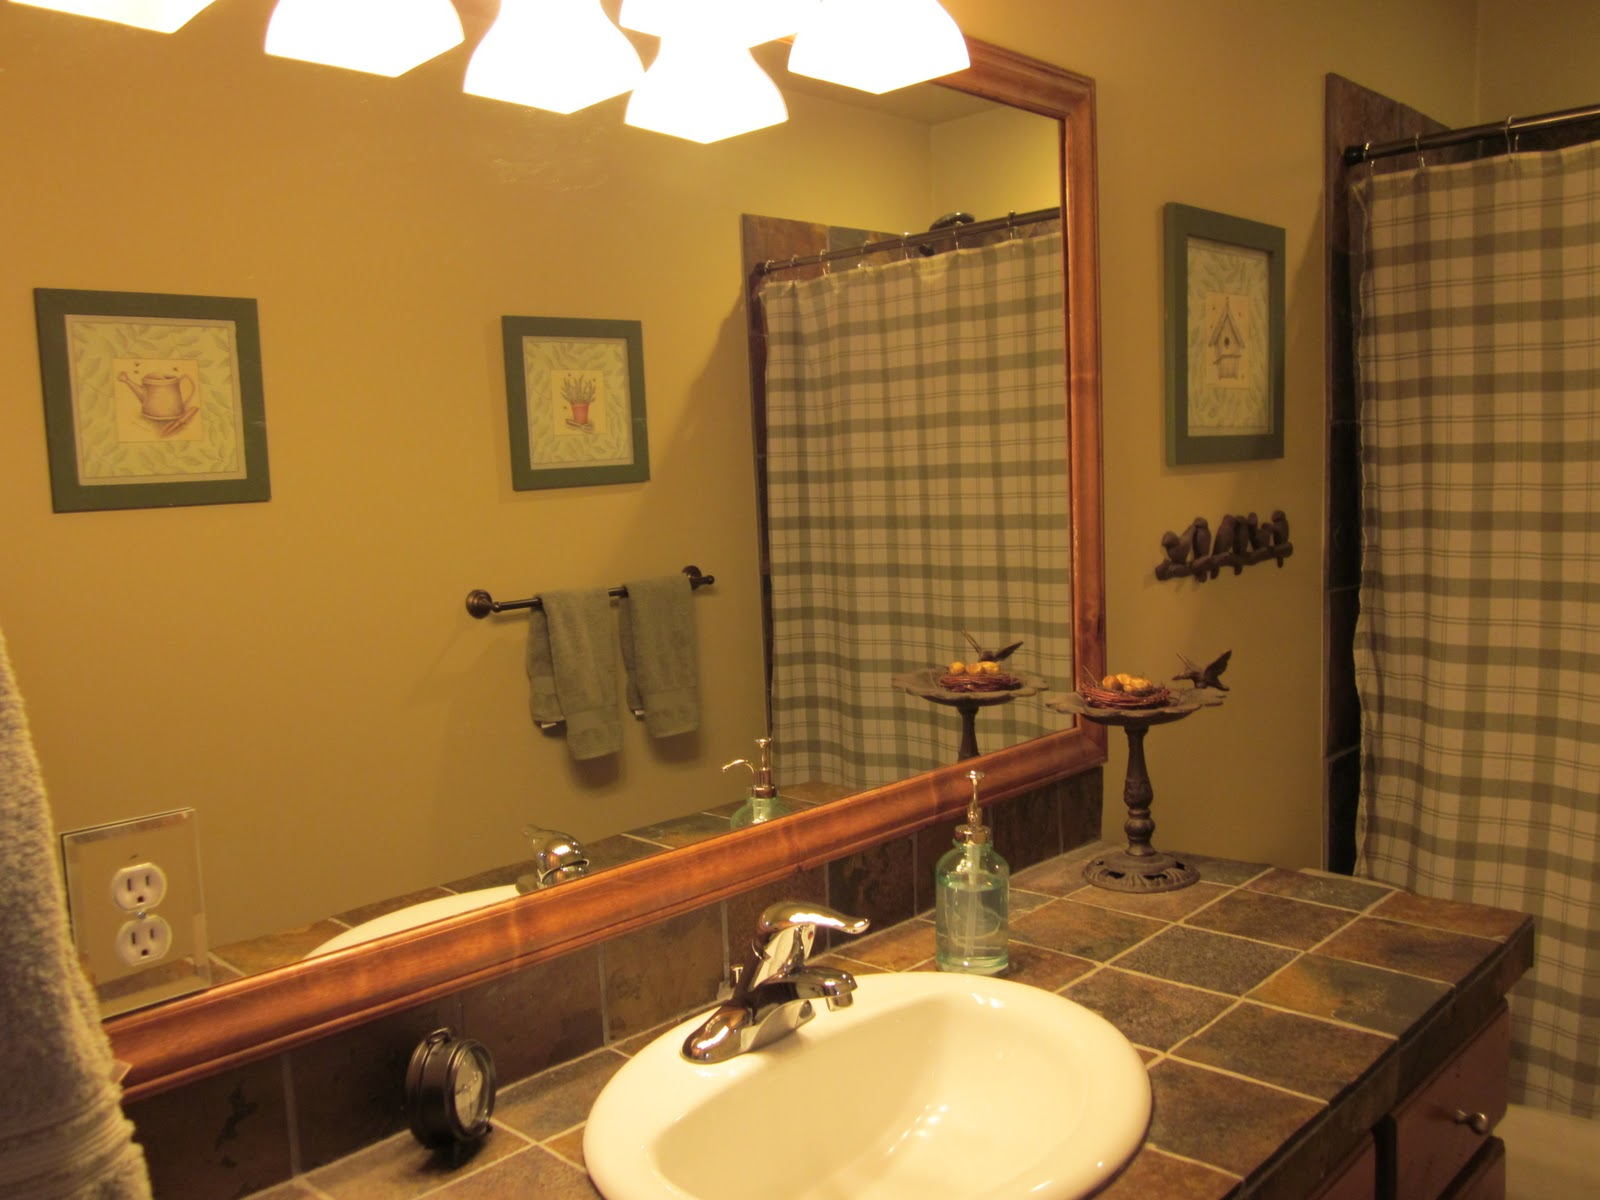 Fine Heated Tile Floor Bathroom Cost Thin Shabby Chic Bath Shelves Regular Bathtub Ceramic Paint Bathrooms And More Reviews Old Popular Color For Bathroom Walls YellowBest Hotel Room Bathrooms In Las Vegas Our Adventures In Home Improvement: Easy Update To Boring Bathroom ..